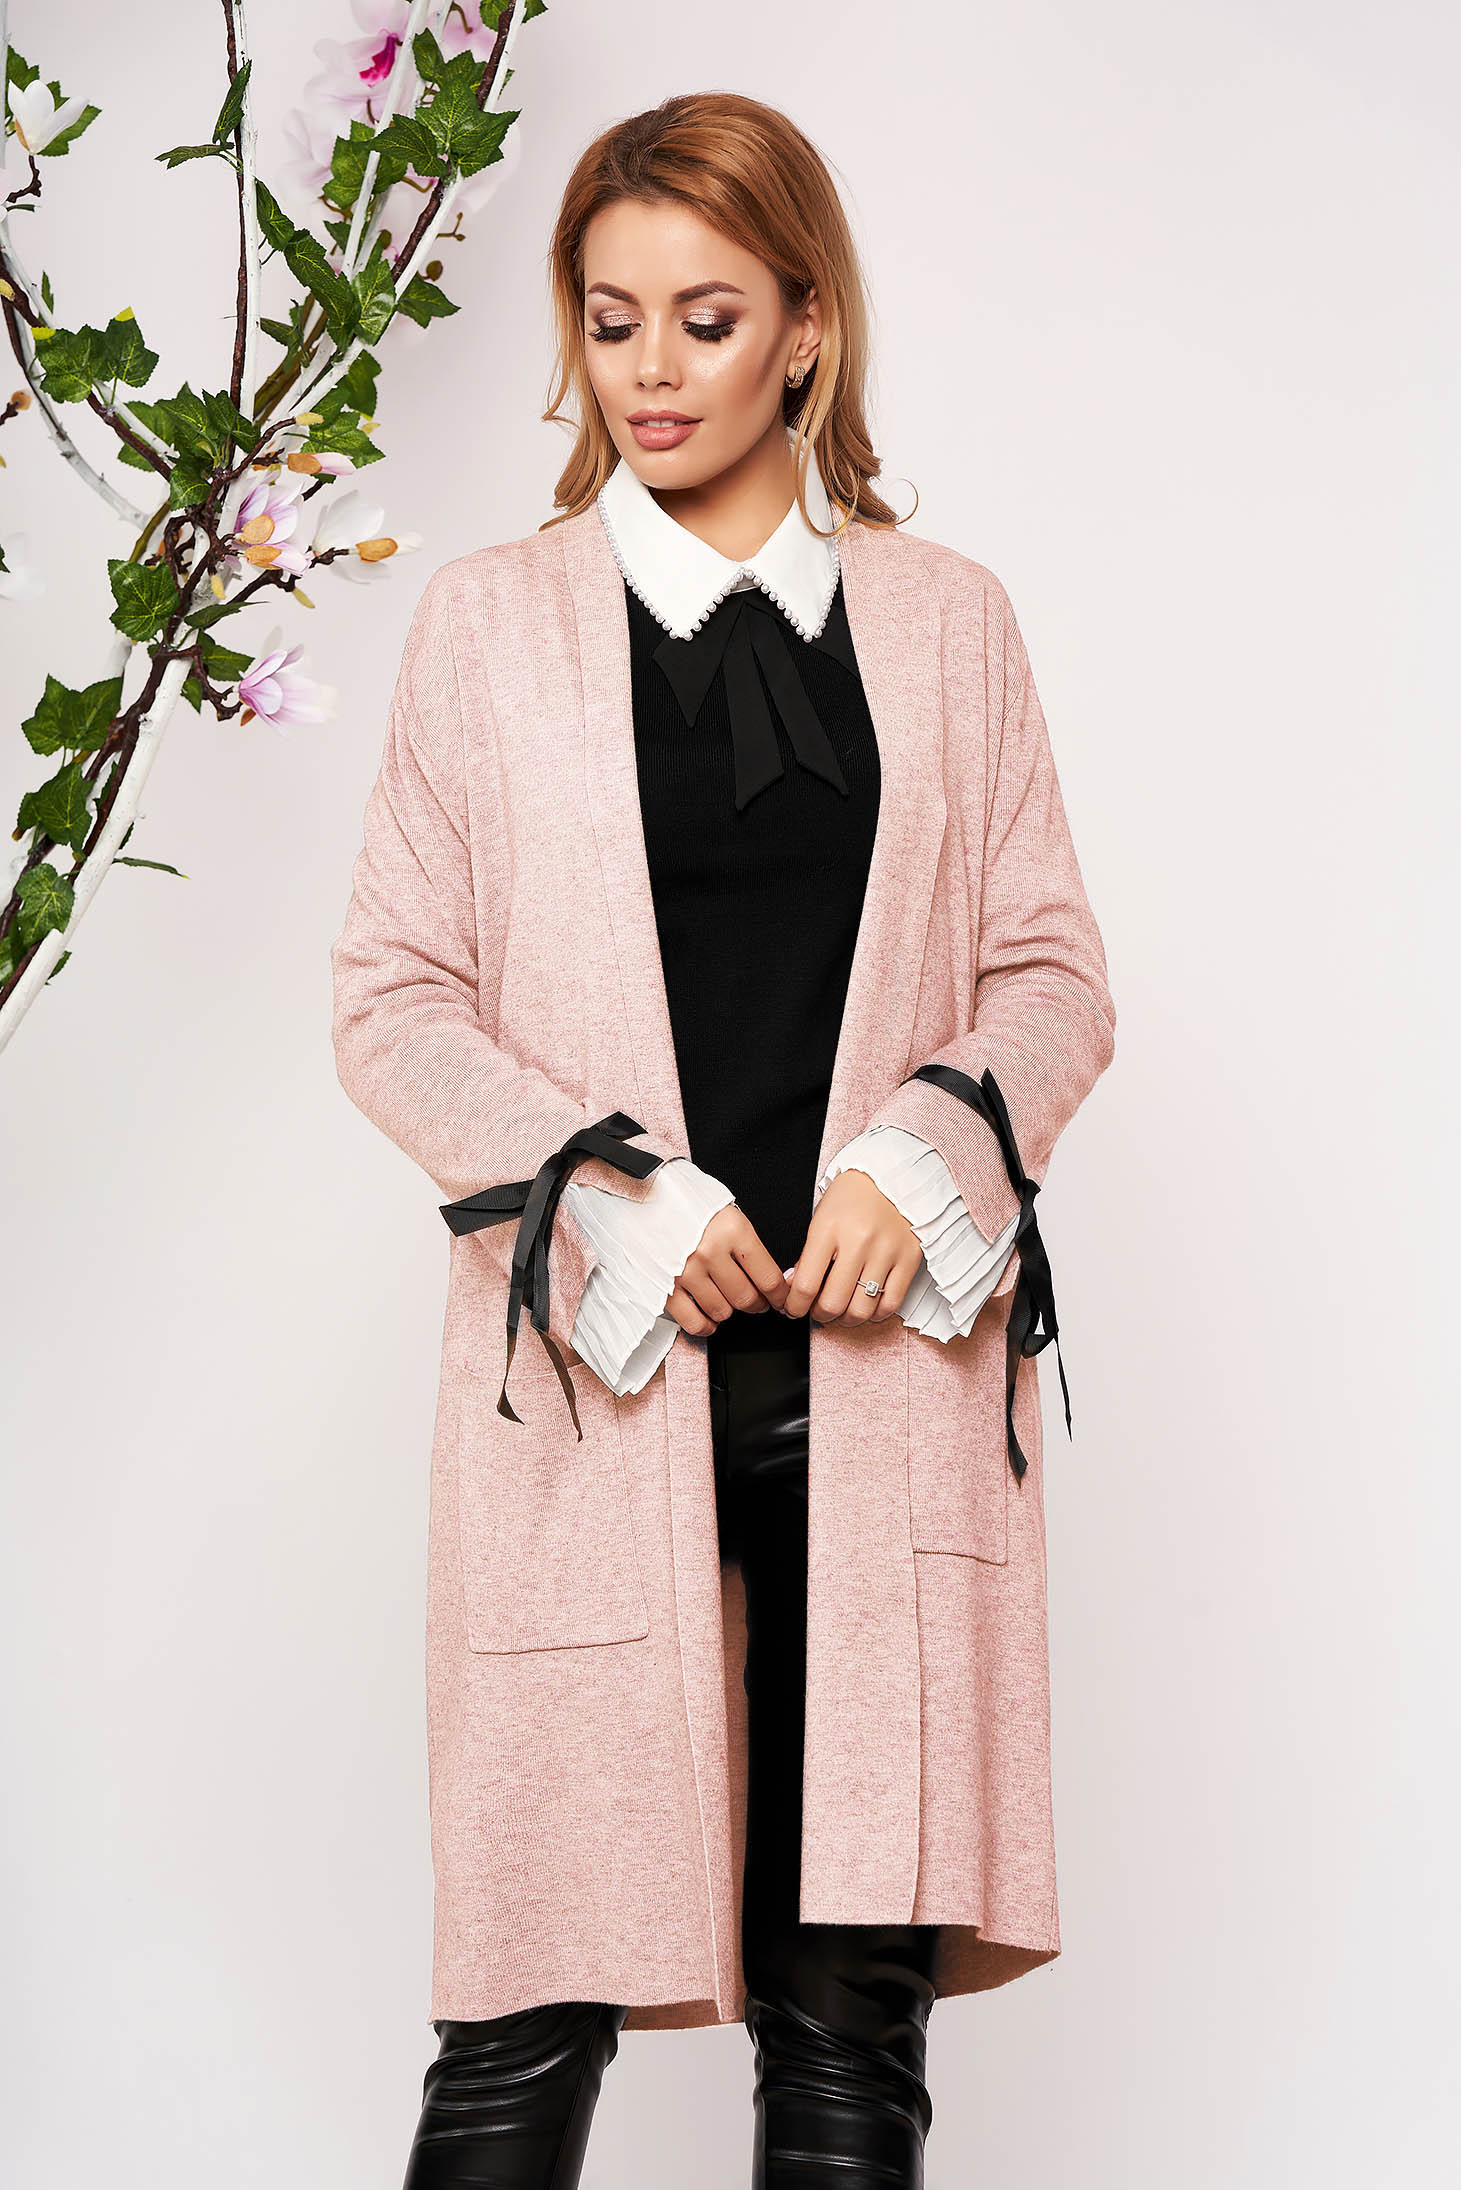 Lightpink cardigan elegant long knitted with bow accessories with front pockets